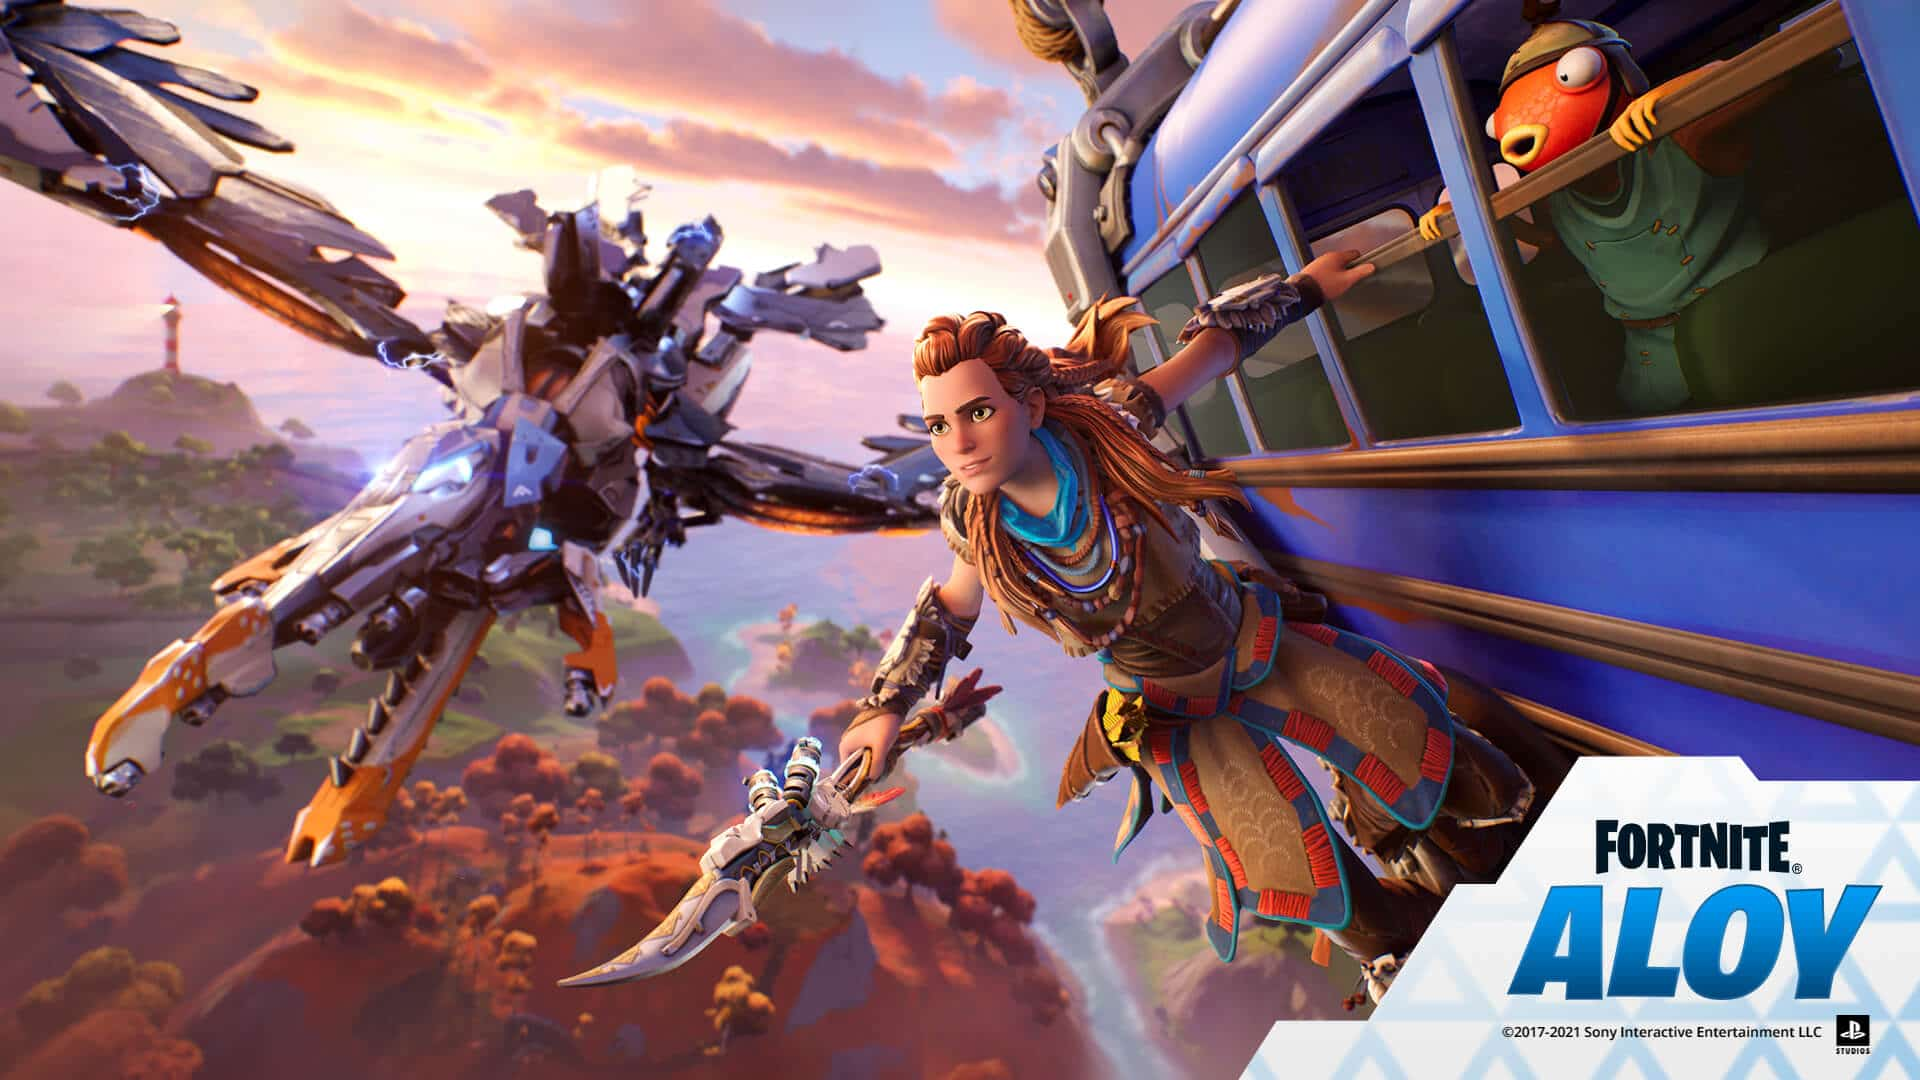 Aloy sbarca su Fortnite: arriva la collaborazione con Horizon Zero Dawn thumbnail